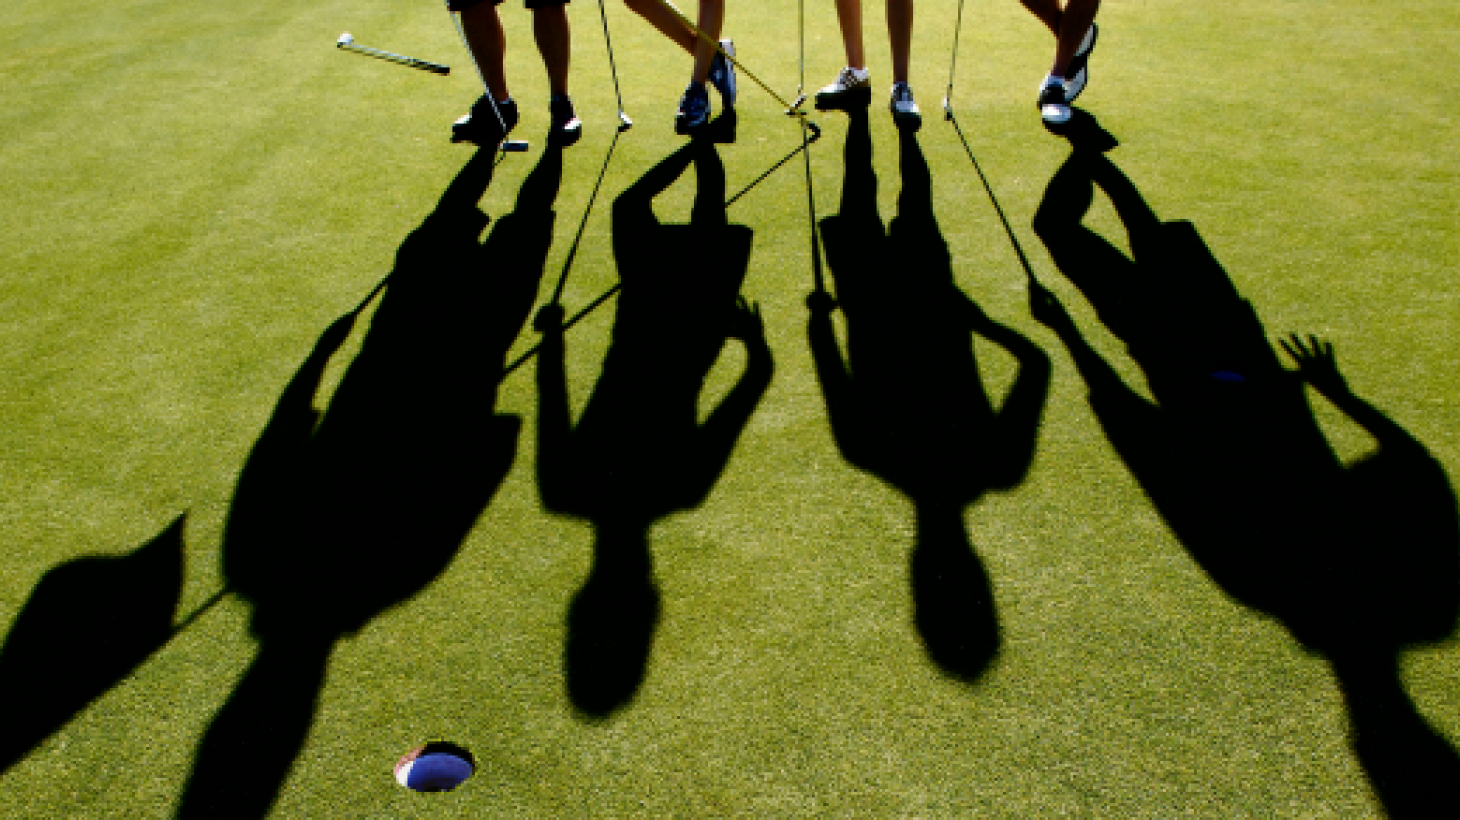 Our Favorite On-Hole Contests & Games for Your Next Golf